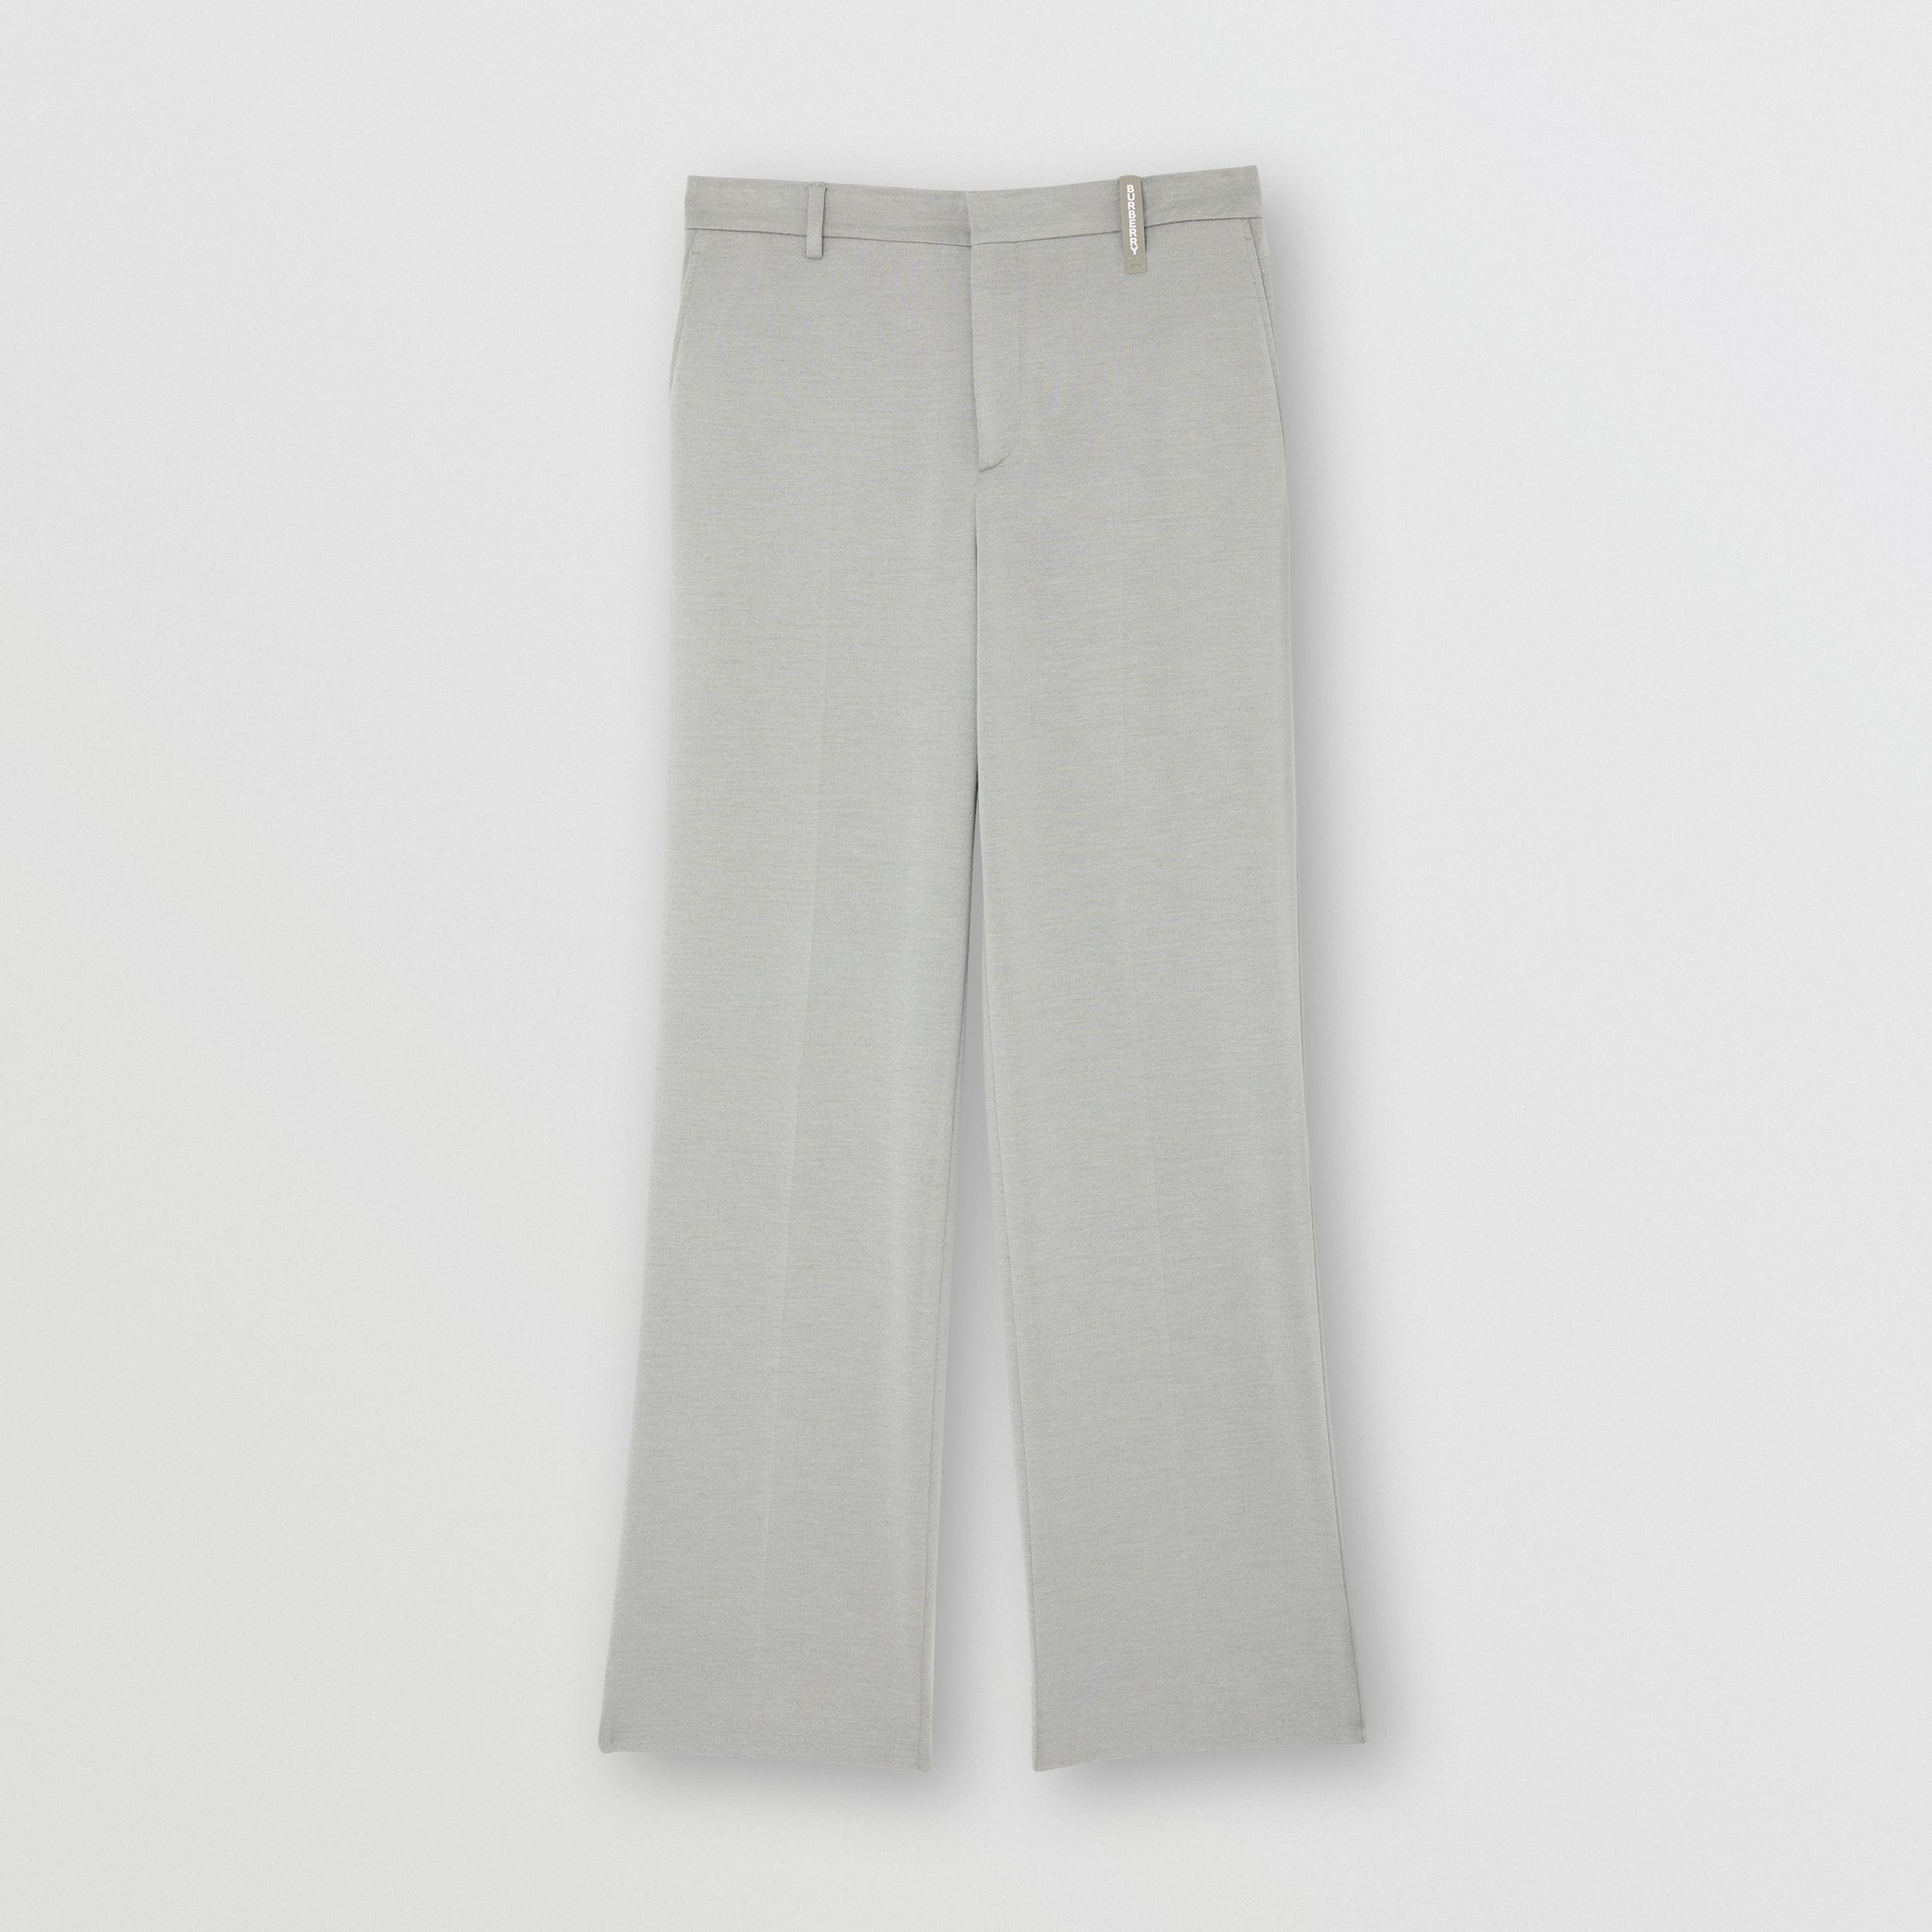 Cashmere Silk Jersey Wide-leg Trousers in Light Pebble Grey - Men | Burberry - 4